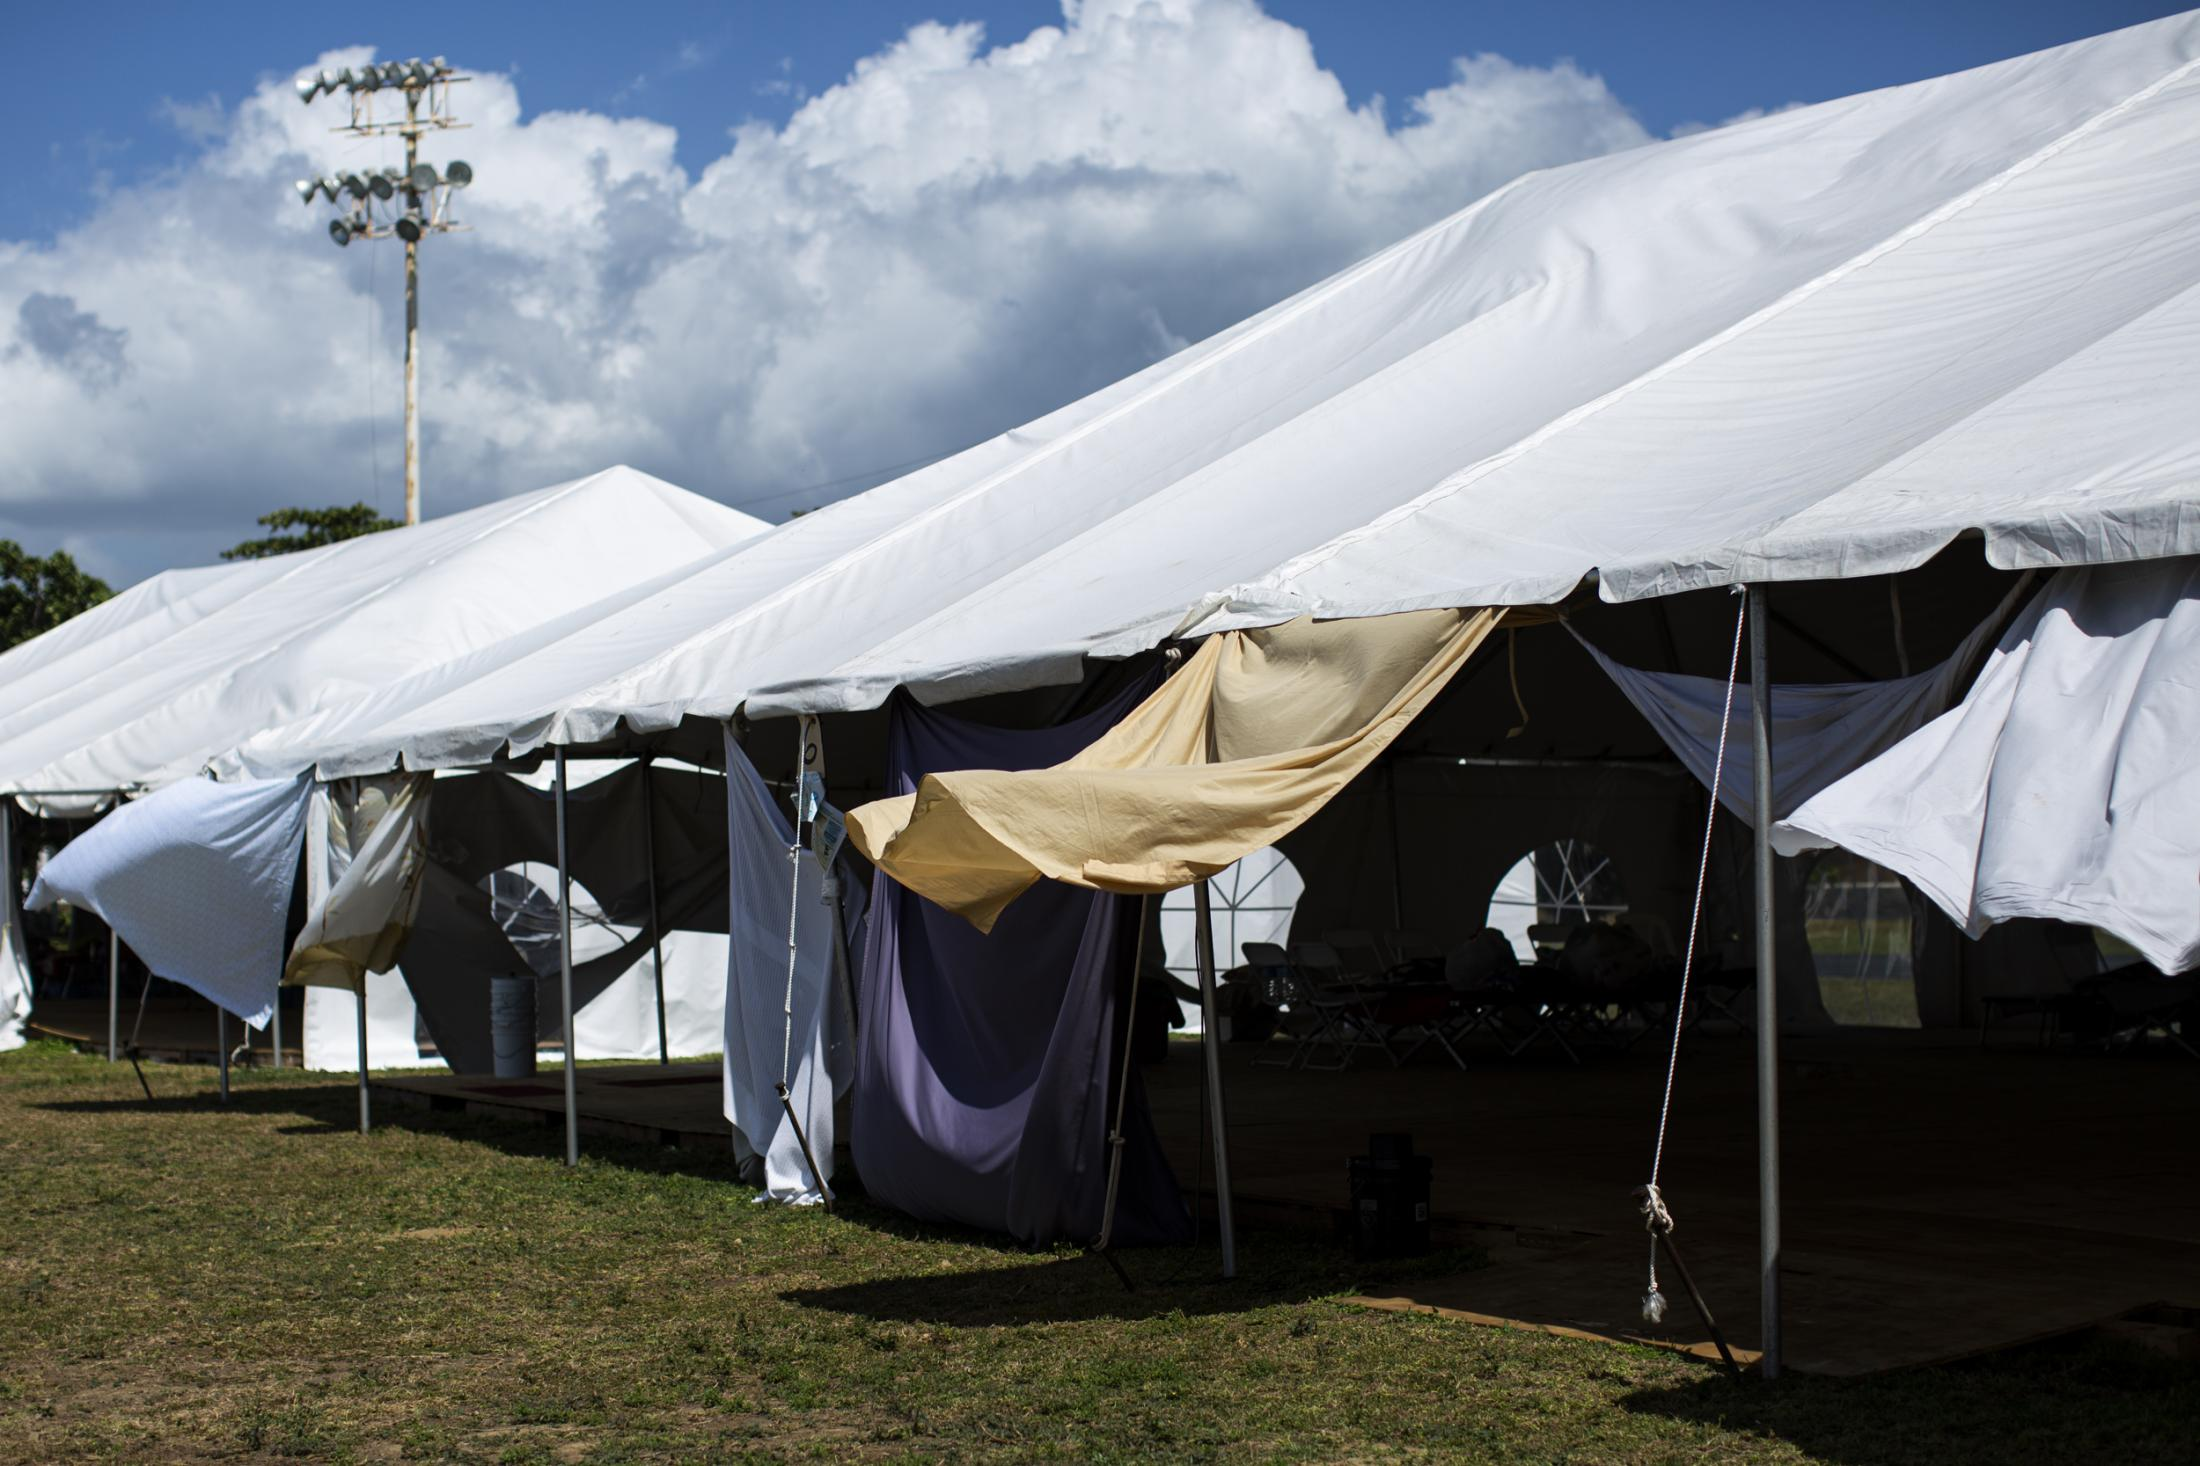 Tents used to house people at the government shelter in the town's athletics track on February 12, 2020, in Guanica, P.R. There are 172 people at the shelter. After a cluster of earthquakes ravaged the south of the island last month 800 people are still living in government shelters and makeshift camps. Hundreds are thought to be camping in their backyards In fear of having their homes collapse if another mayor quake hits. On January 7 the strongest earthquake hit at a 6.4 magnitude. (Erika P. Rodriguez for The New York Times)